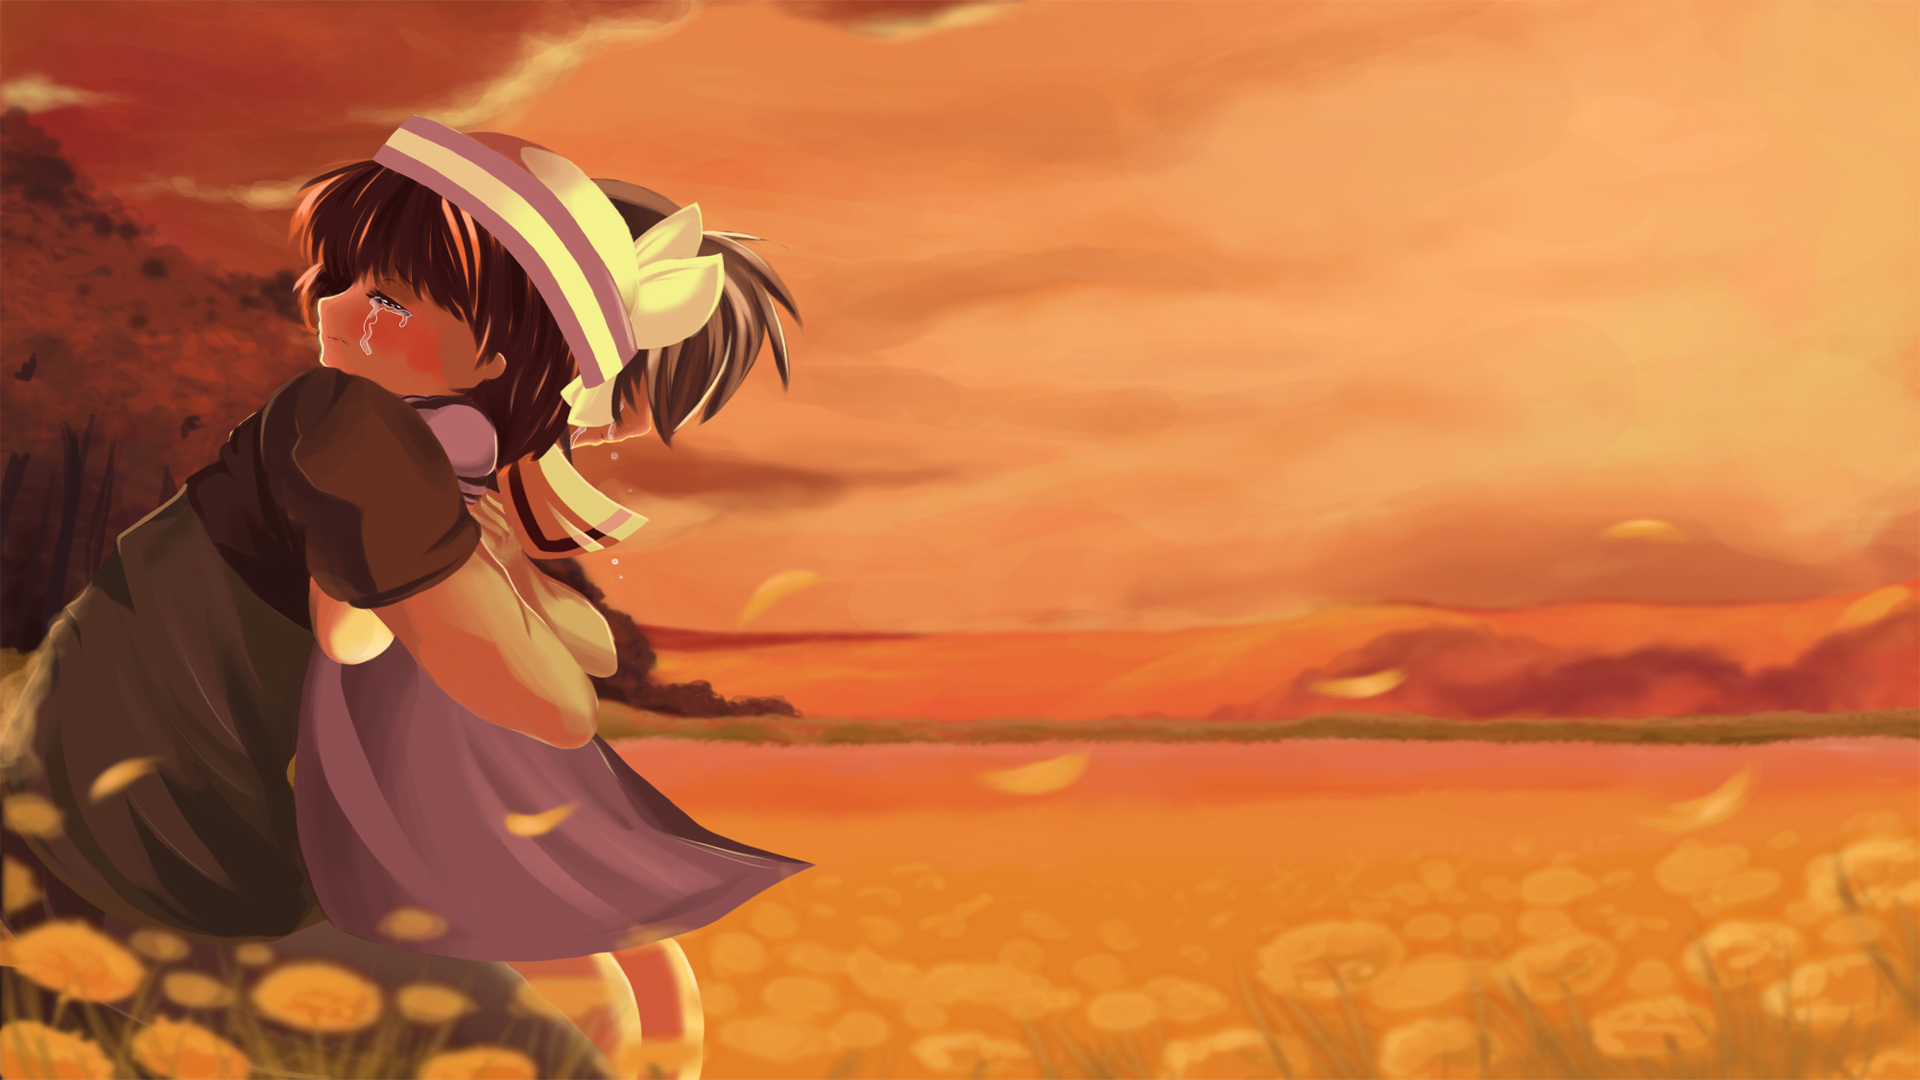 Clannad Wallpapers Posted By Zoey Sellers